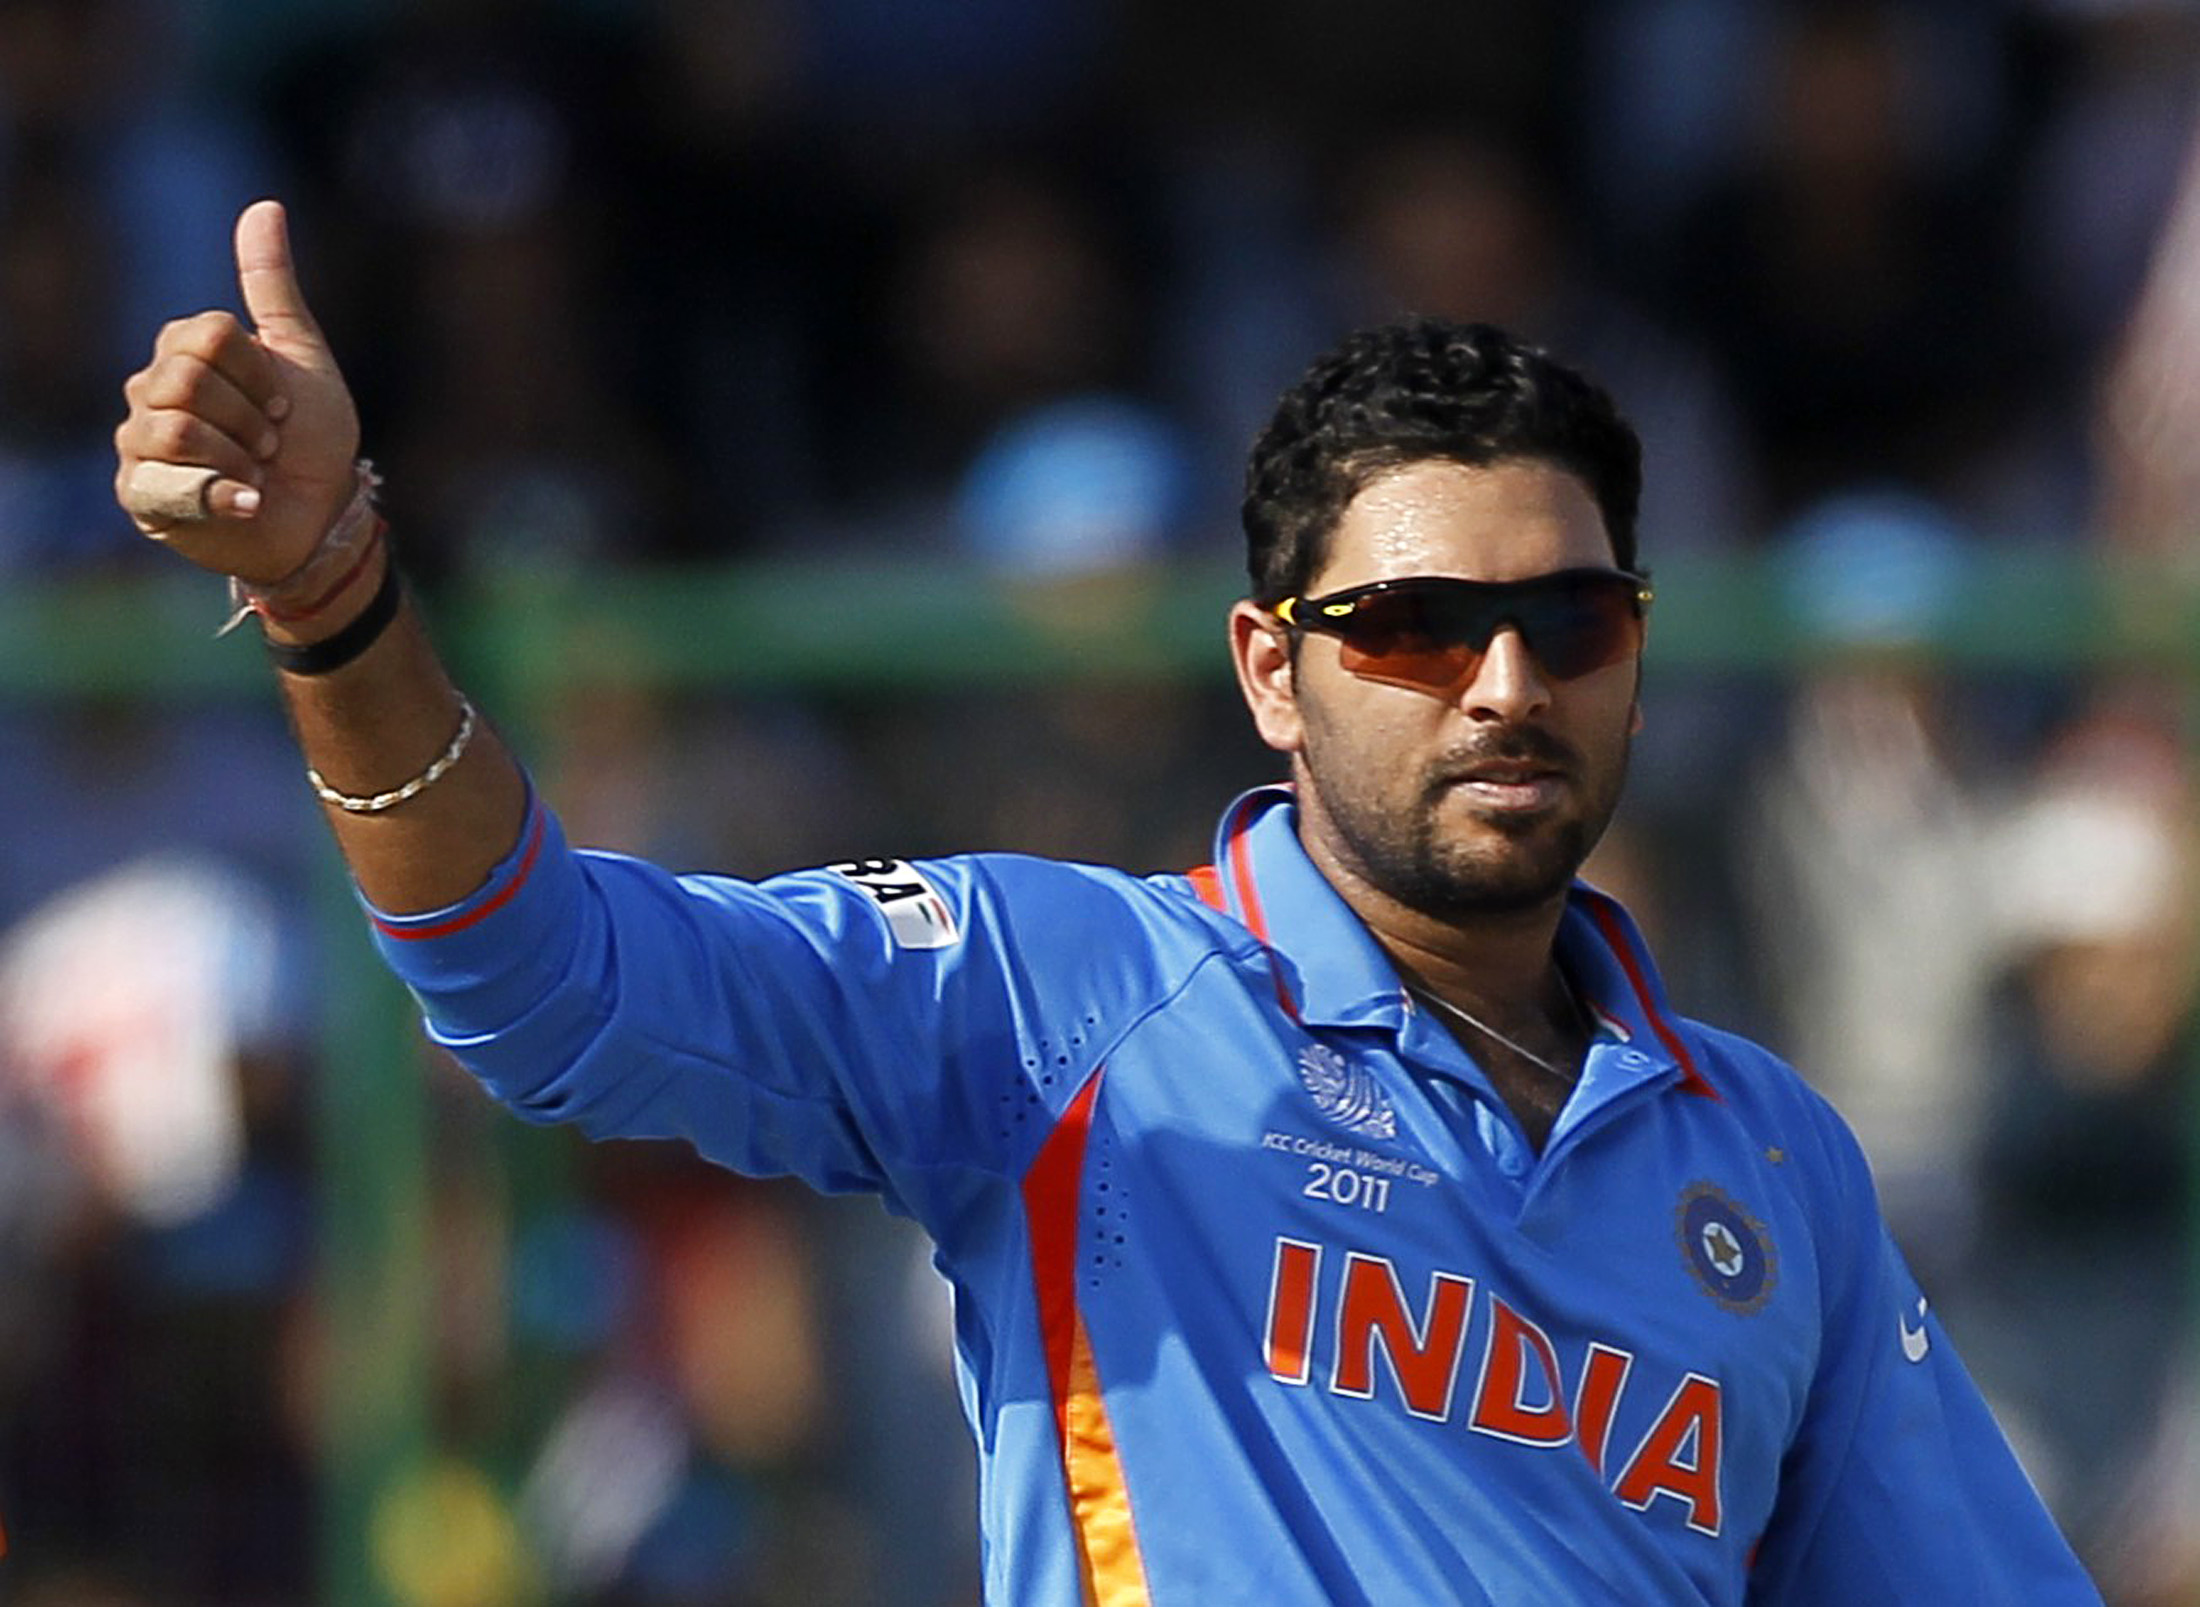 Yuvraj Singh Net Worth 2018 in Indian Rupees, Salary Per Month